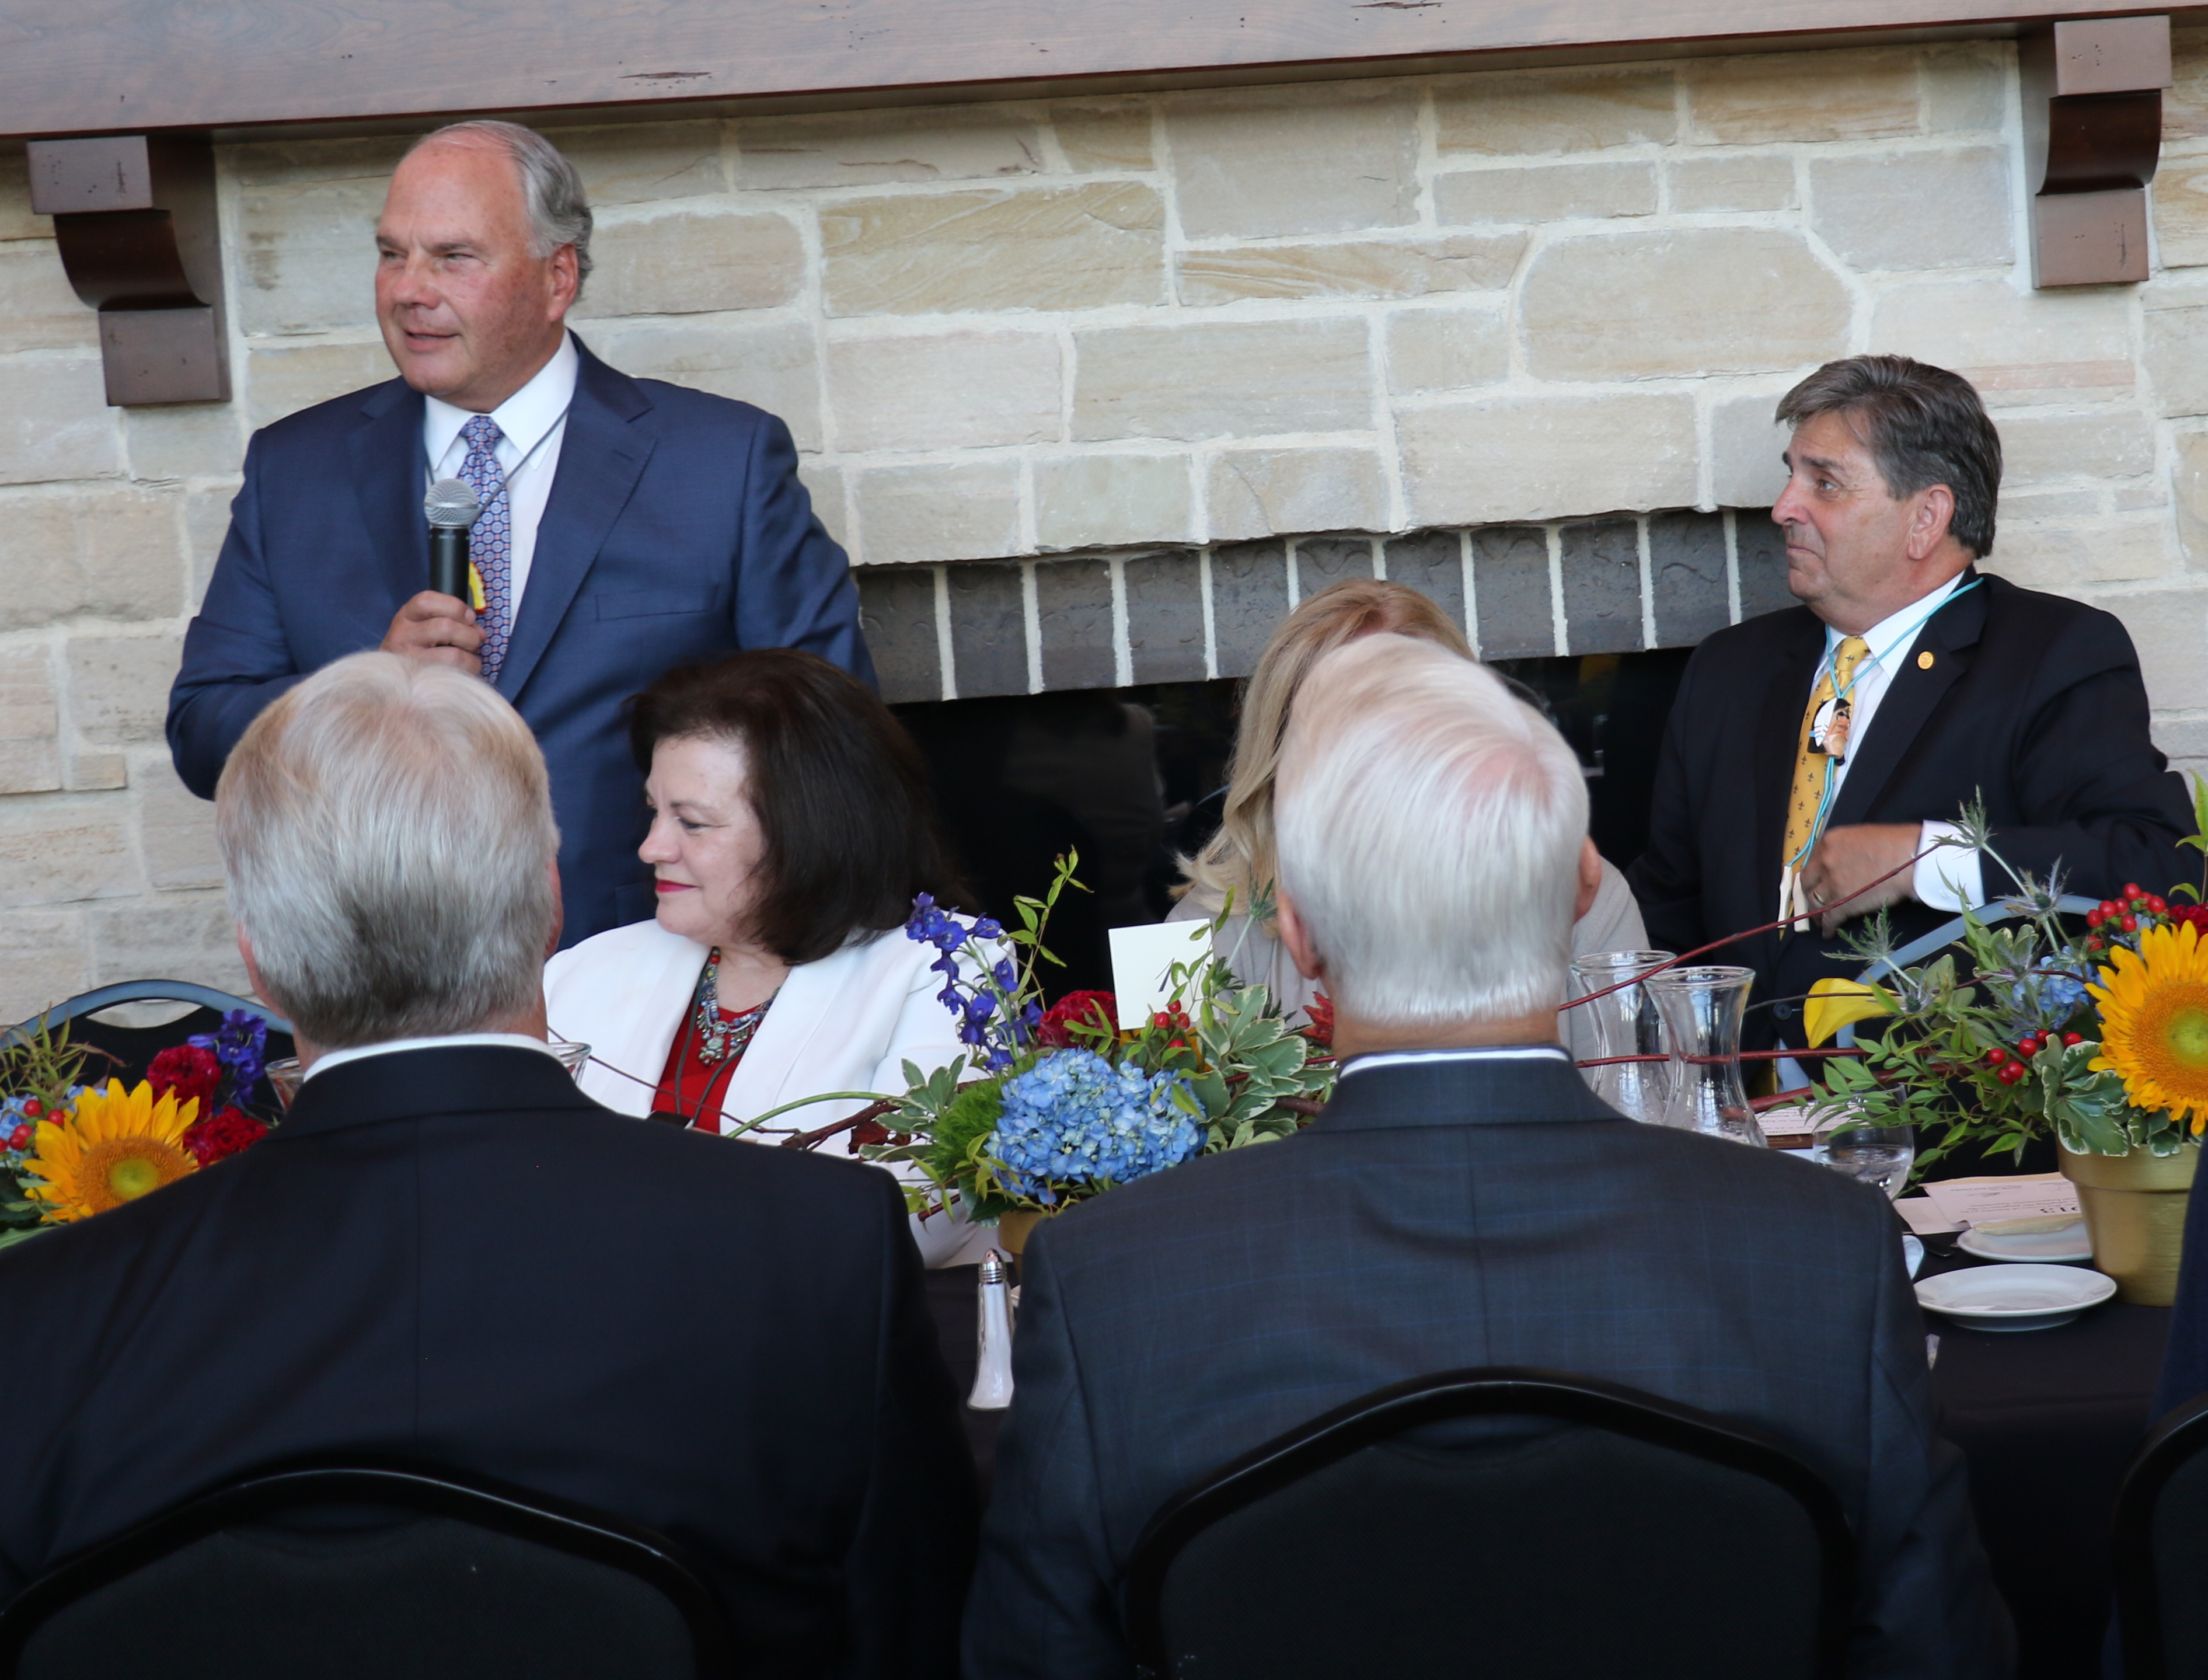 Elder Ronald A. Rasband speaks at a gala celebrating the 106-year relationship between the BSA and The Church of Jesus Christ of Latter-day Saints, in the Hale Center Theatre on Tuesday, Sept. 3, 2019.